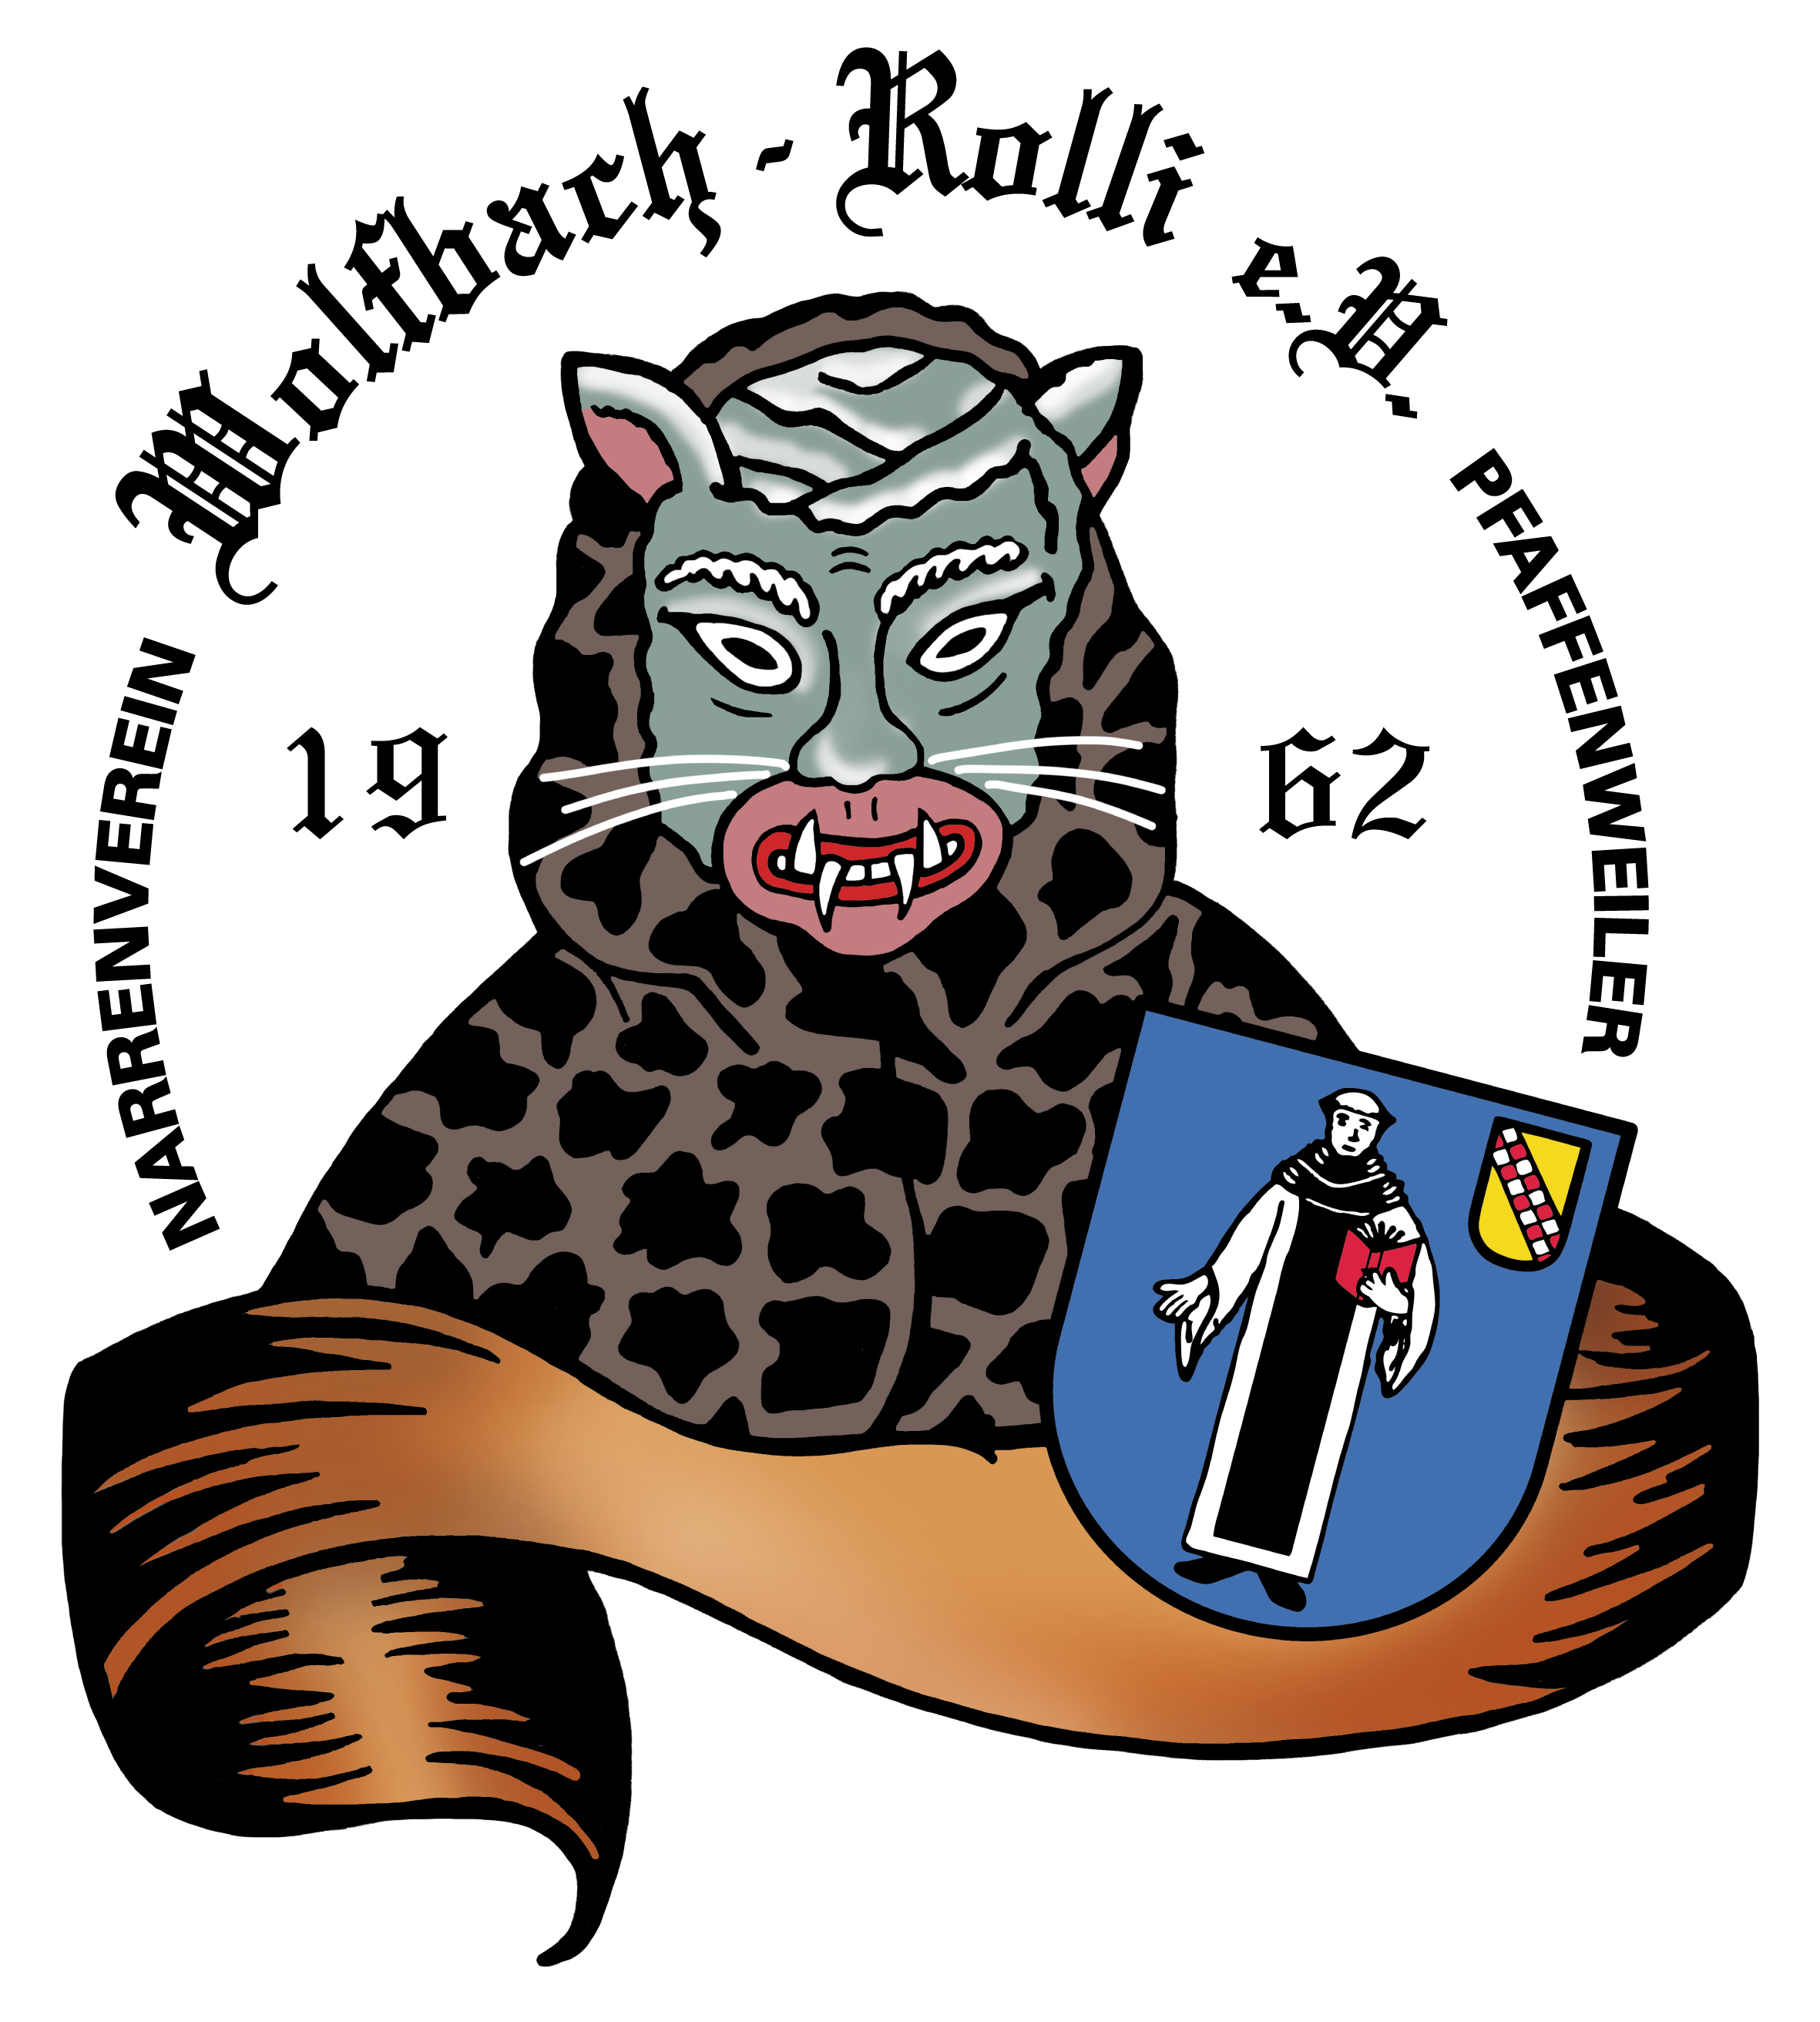 Narrenverein Wolfbach-Rolli e.V.